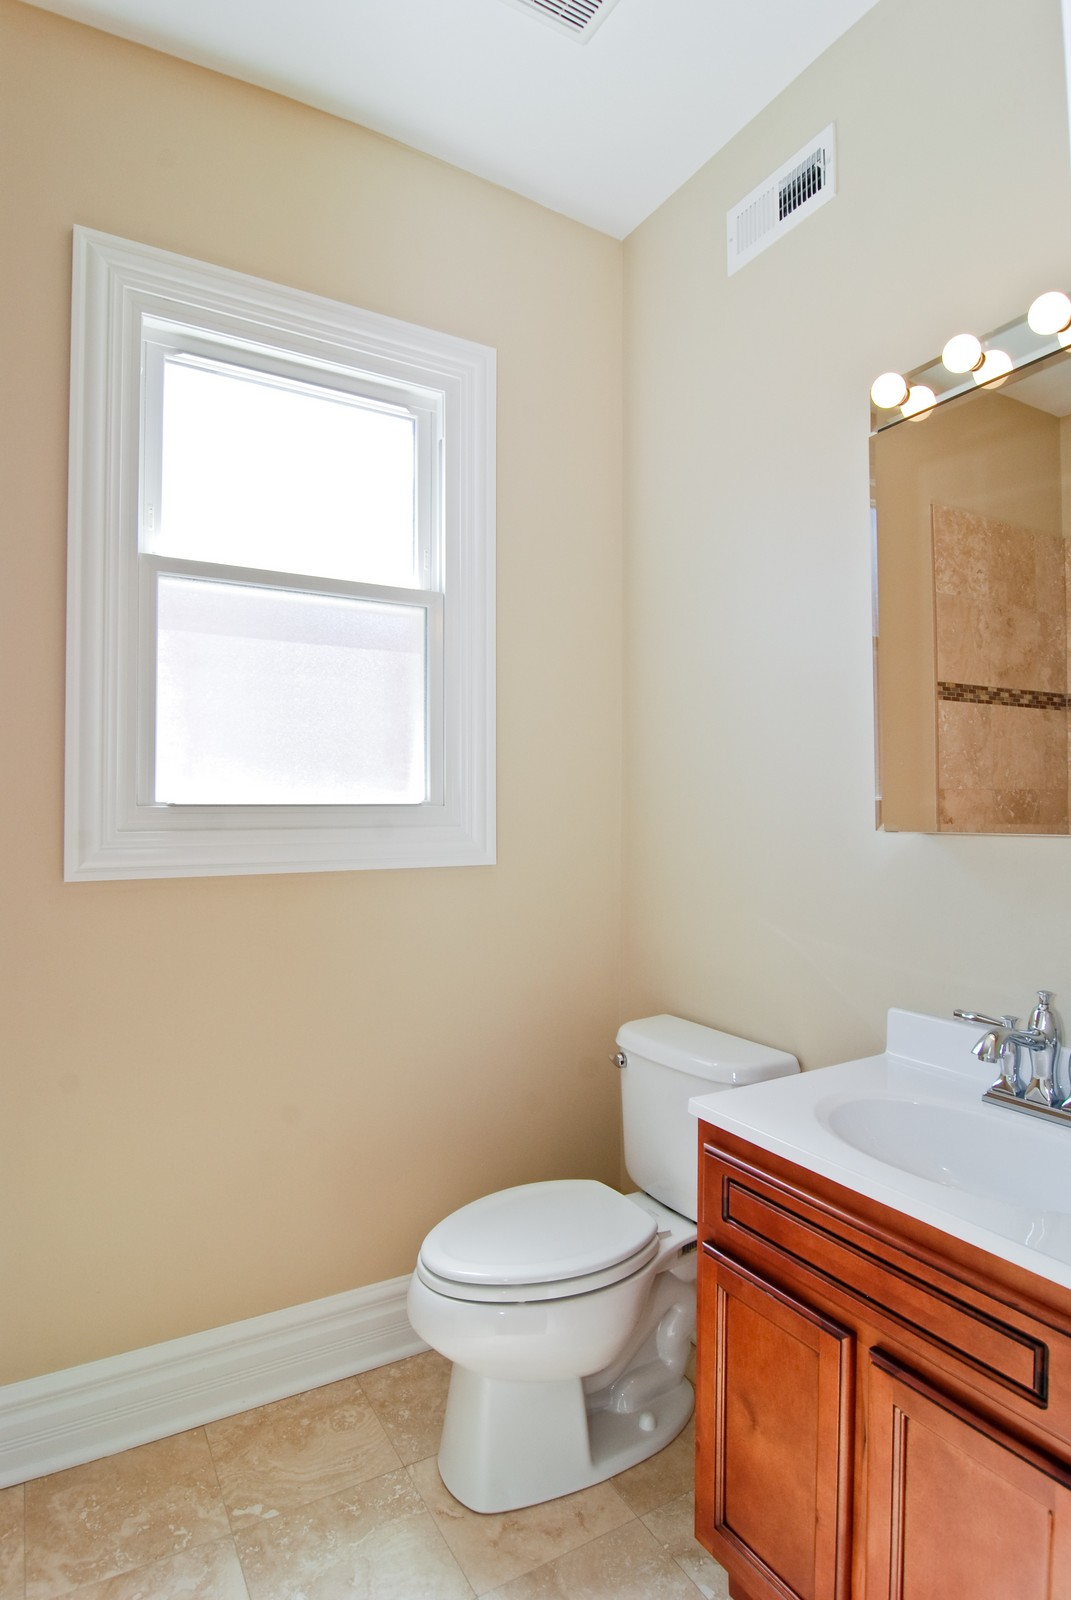 Real Estate Photography - 4334 N. Central Park, Chicago, IL, 60618 - Bathroom